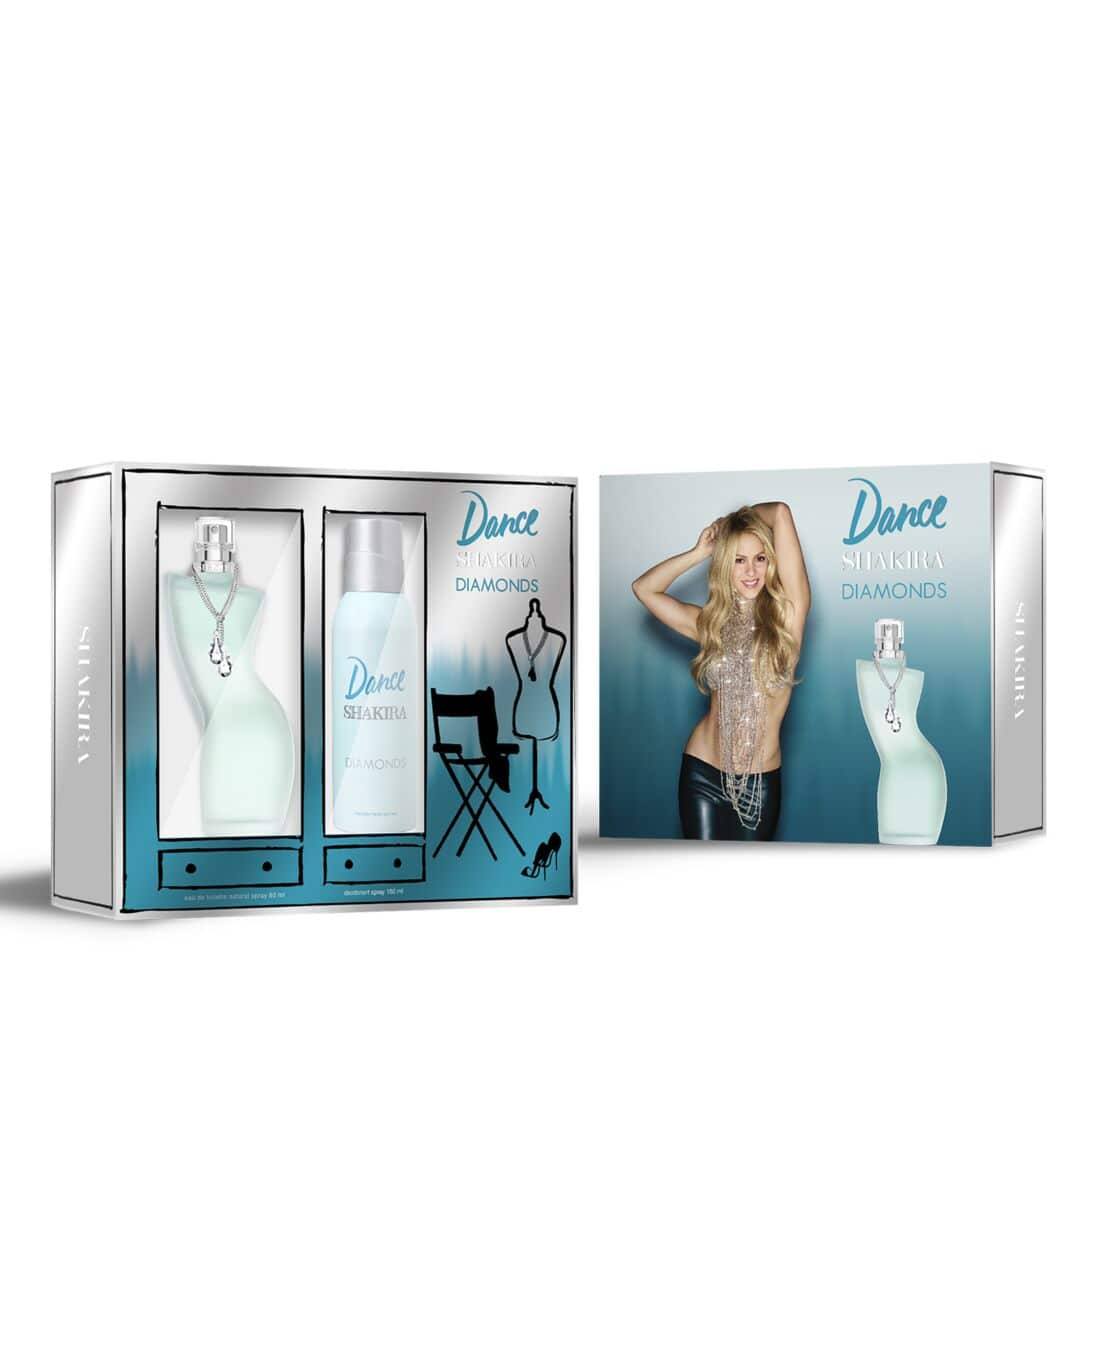 Kit Perfume Dance Diamonds Shakira Feminino 80ml + Desodorante Shakira